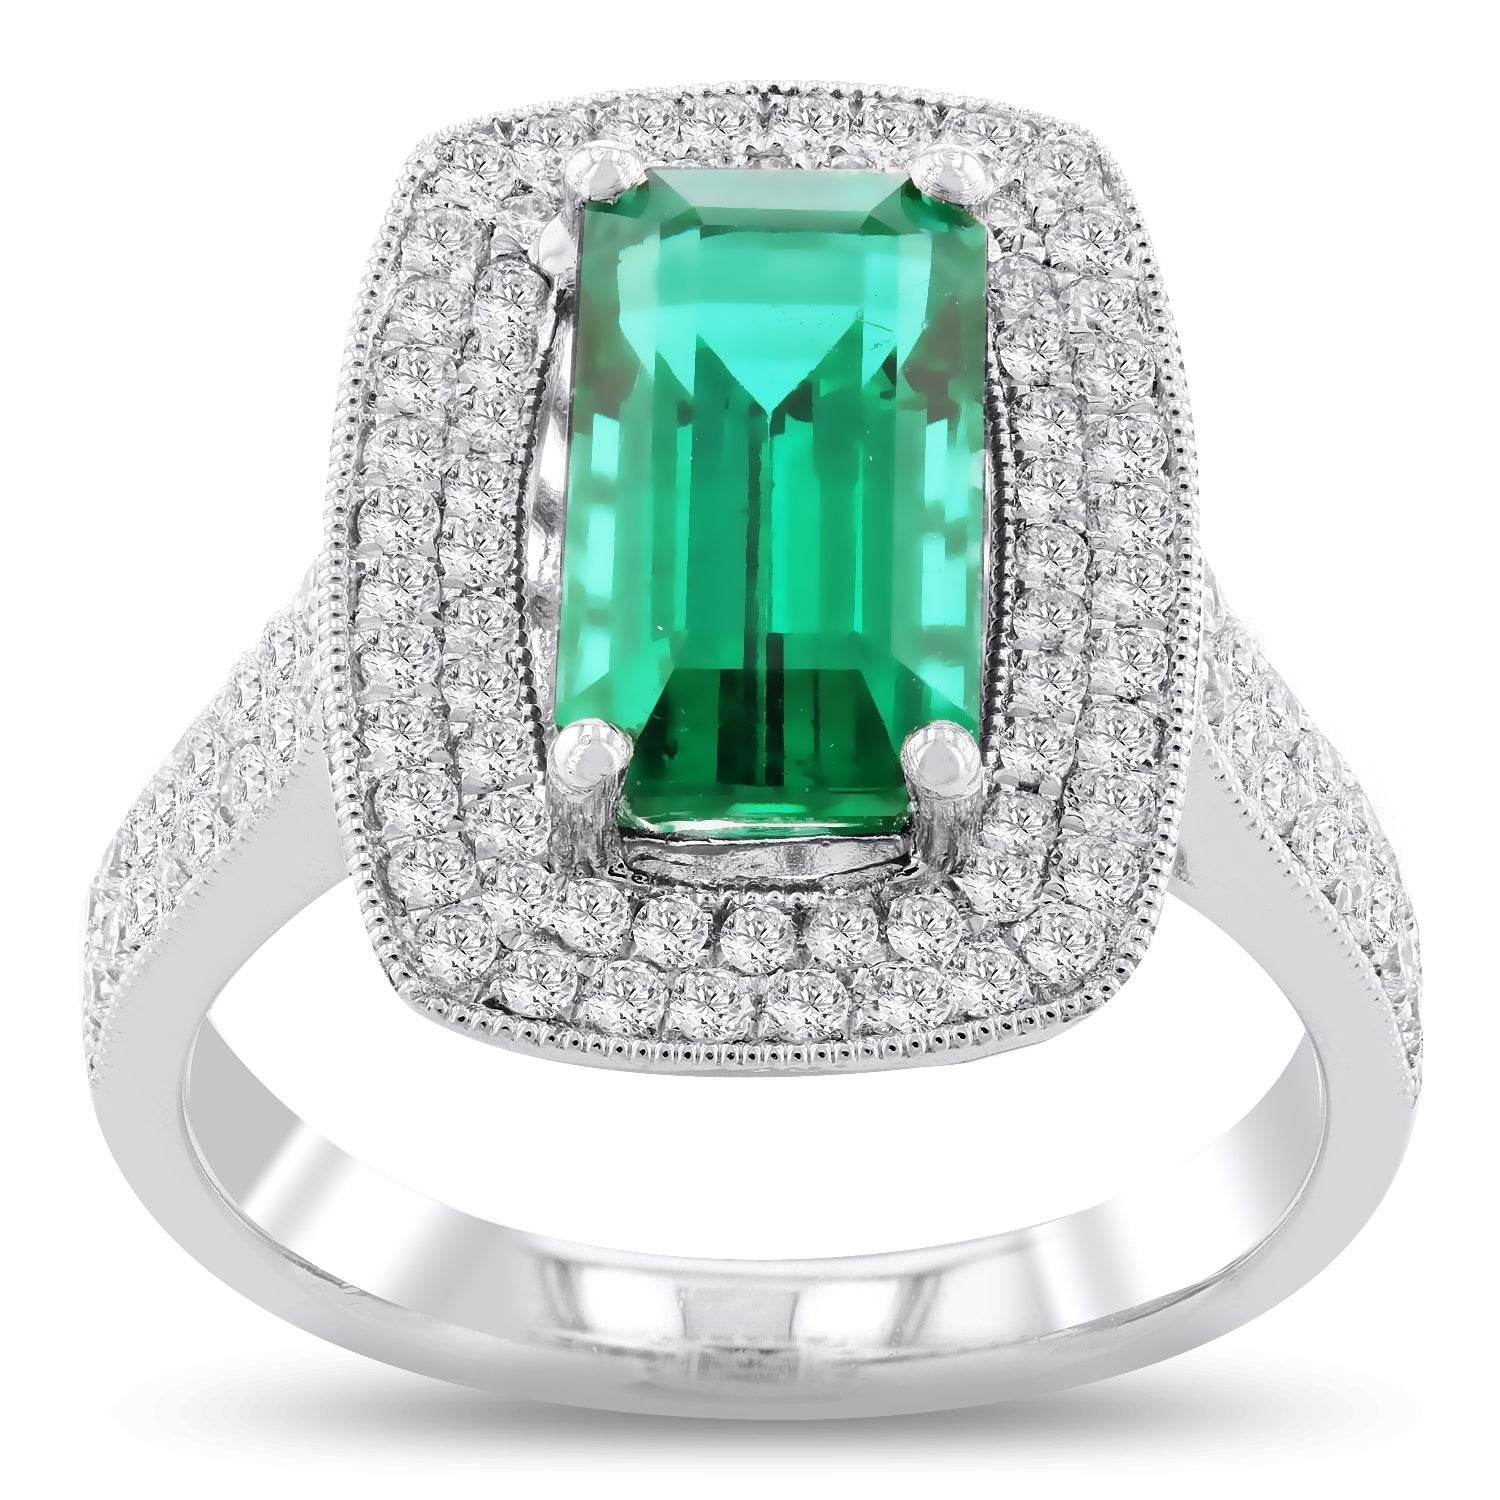 emerald center stone anniversary carat because is finger cut march topic size update the on our